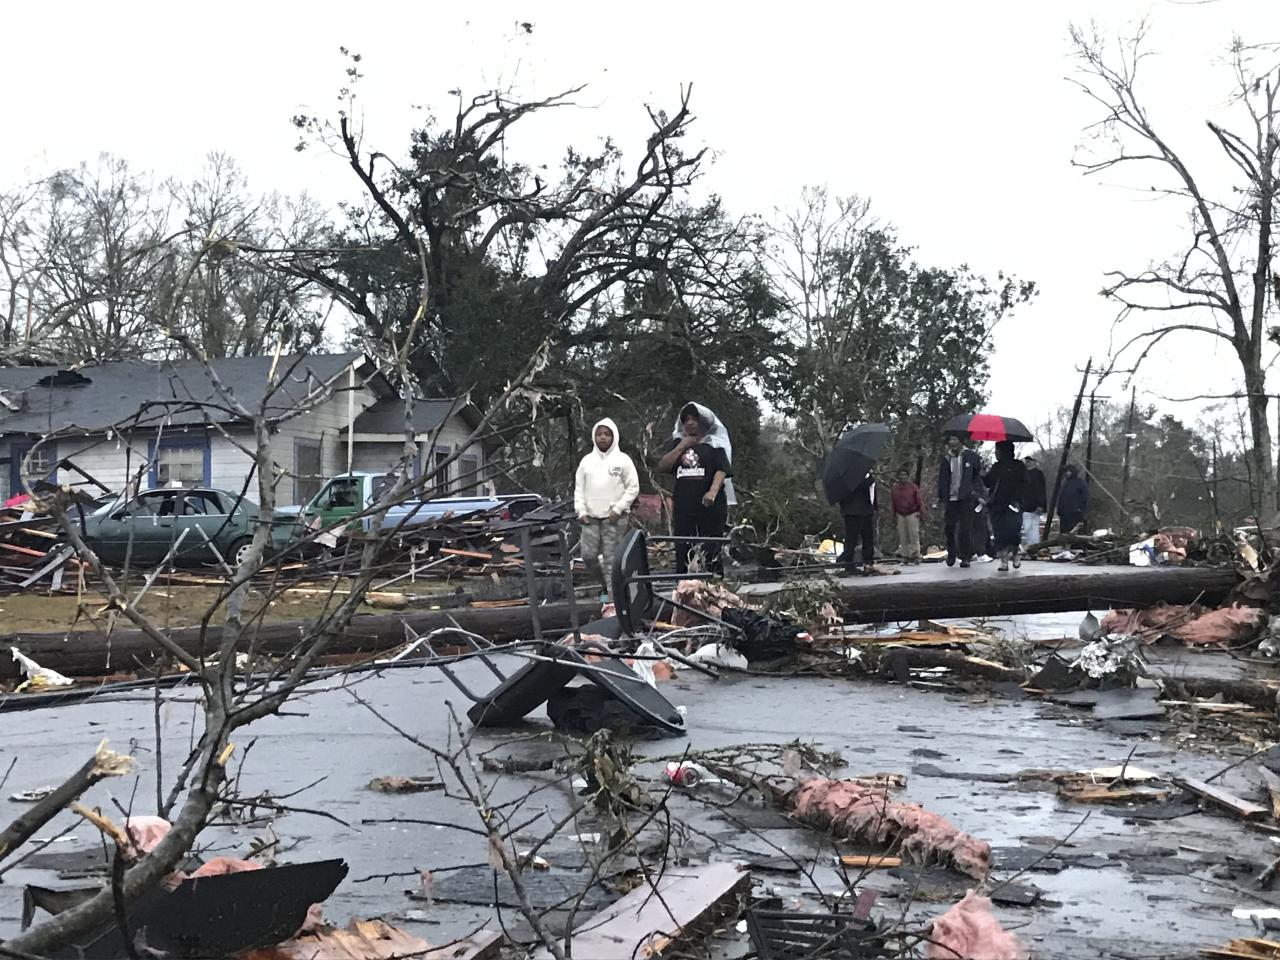 """<p> Trees and debris cover the ground after a tornado tornado ripped through the Hattiesburg, Miss., area early Saturday, Jan. 21, 2017. Mayor Johnny DuPree has signed an emergency declaration for the city, which reported """"significant injuries"""" and structural damage. (Ryan Moore/WDAM-TV via AP) </p>"""